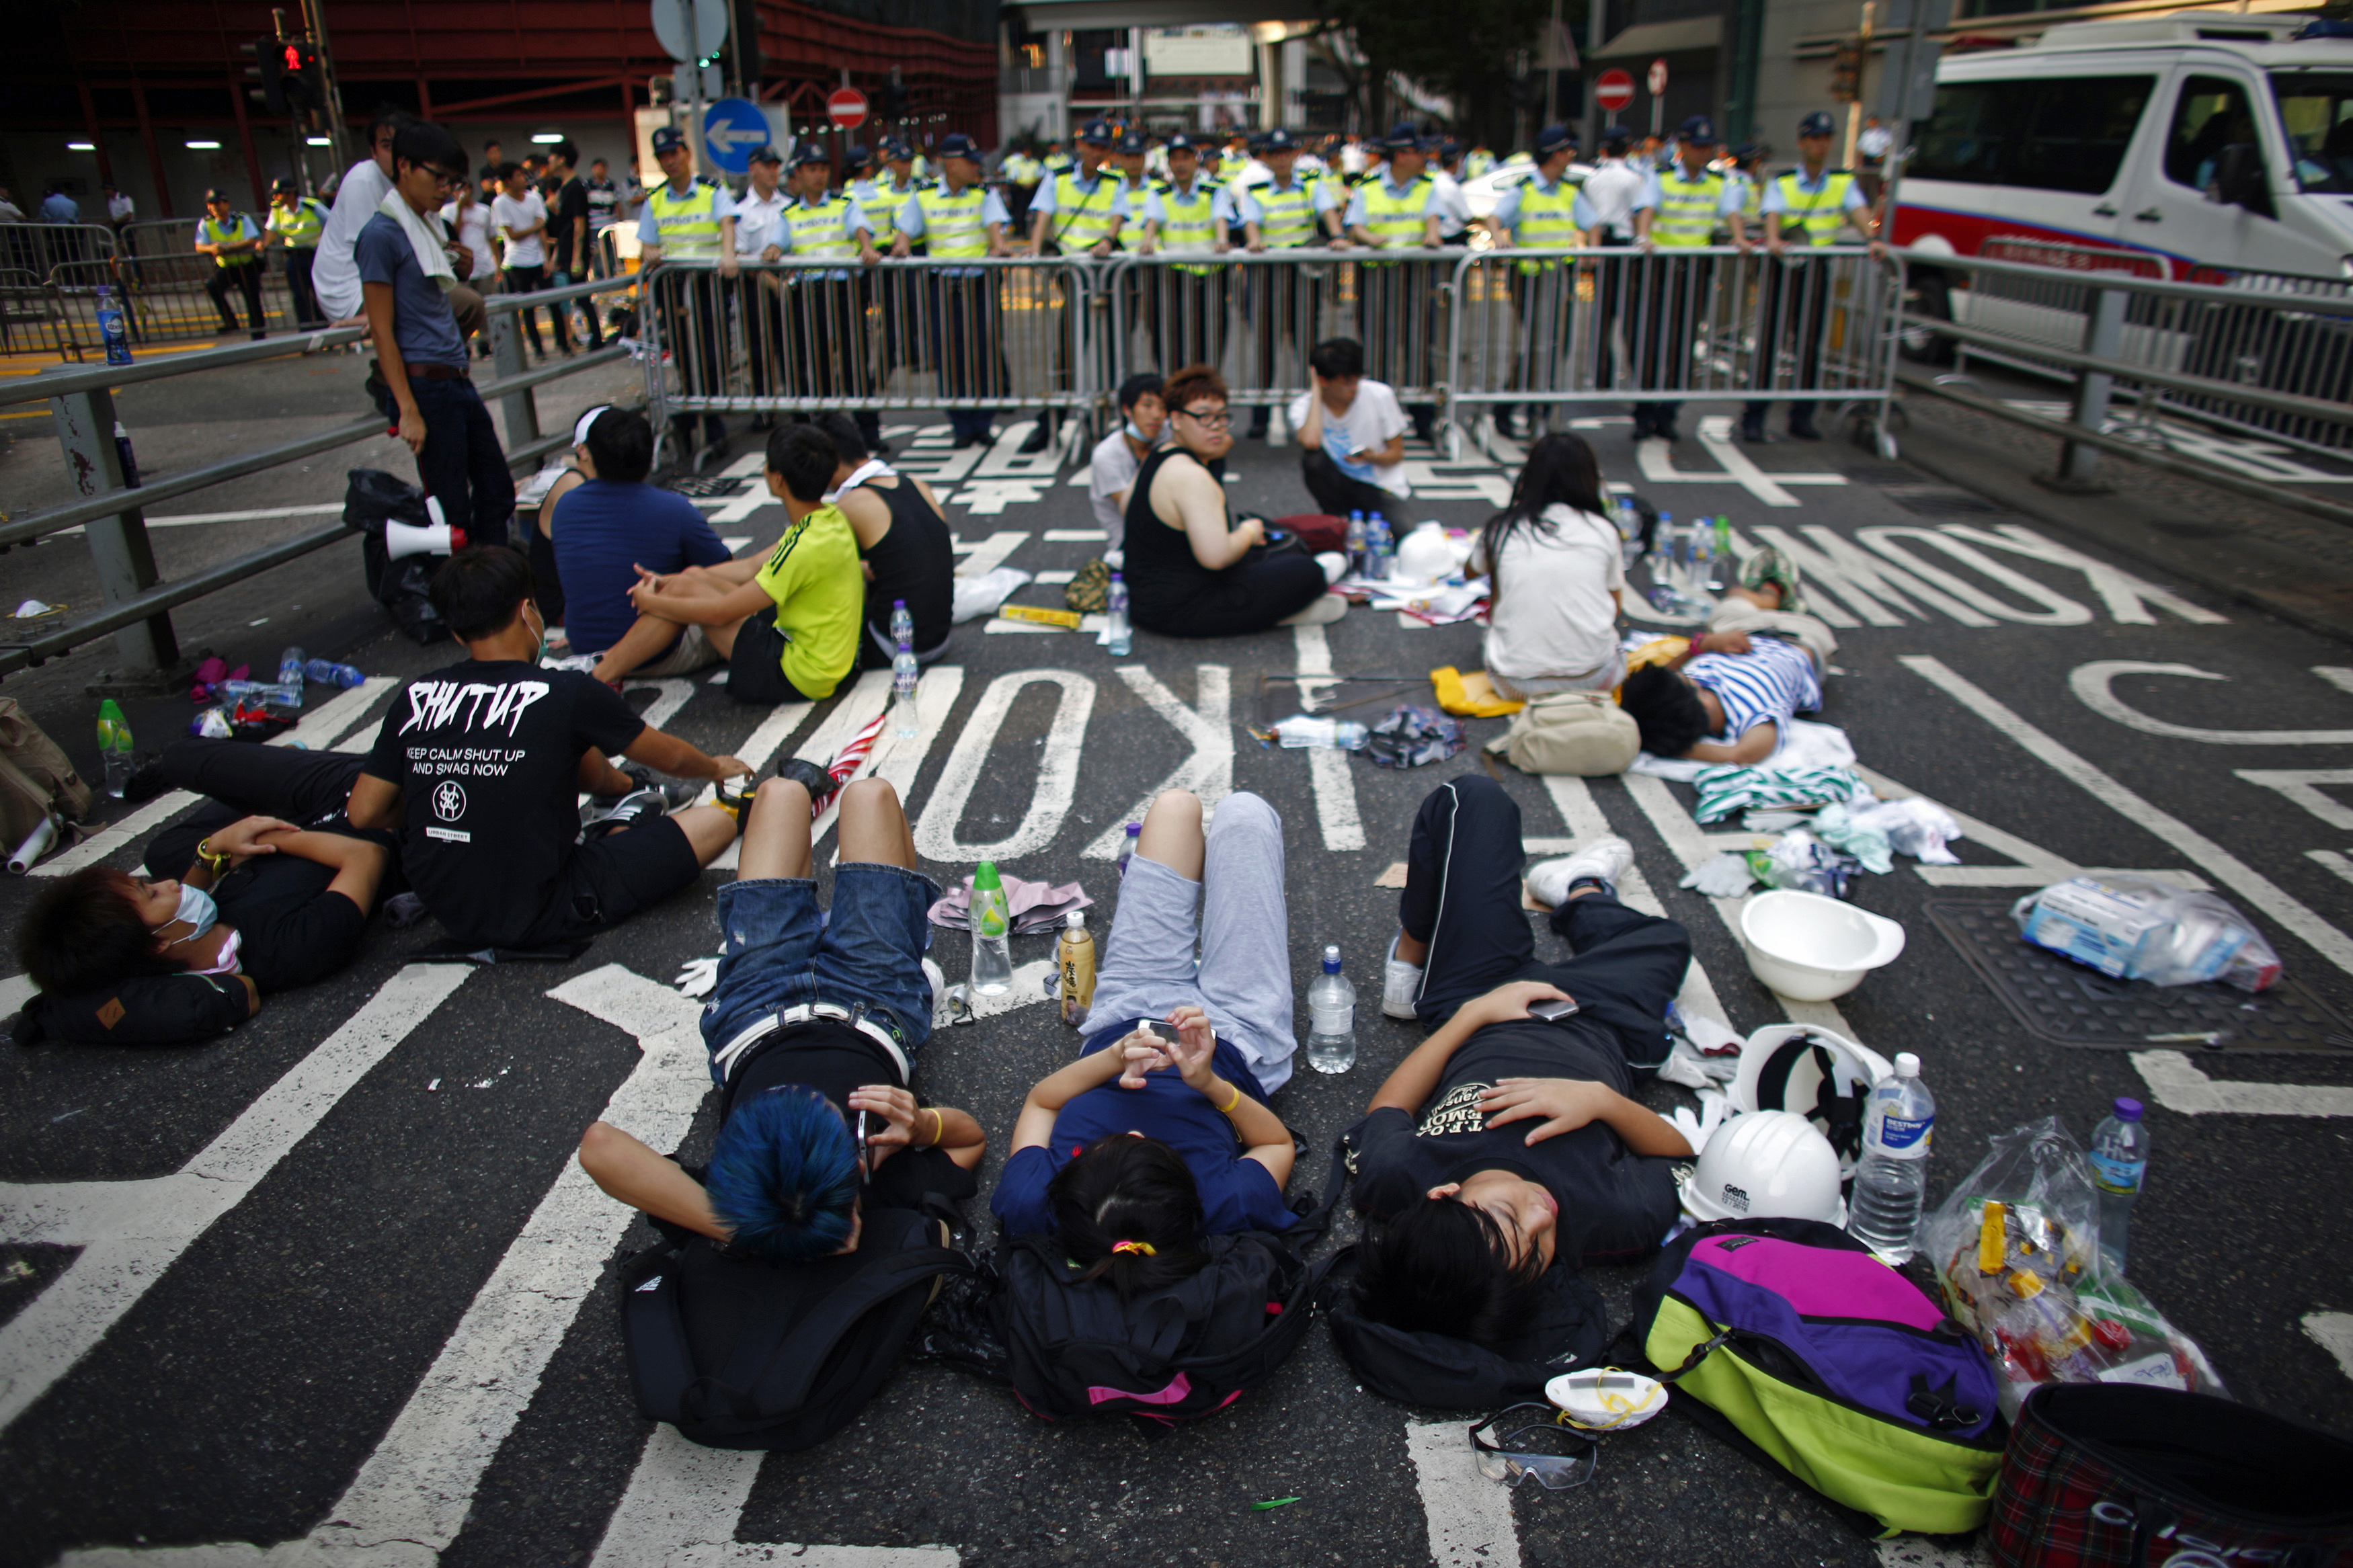 Peaceful protesters block a street near the government headquarters in Hong Kong on Sept 30, 2014